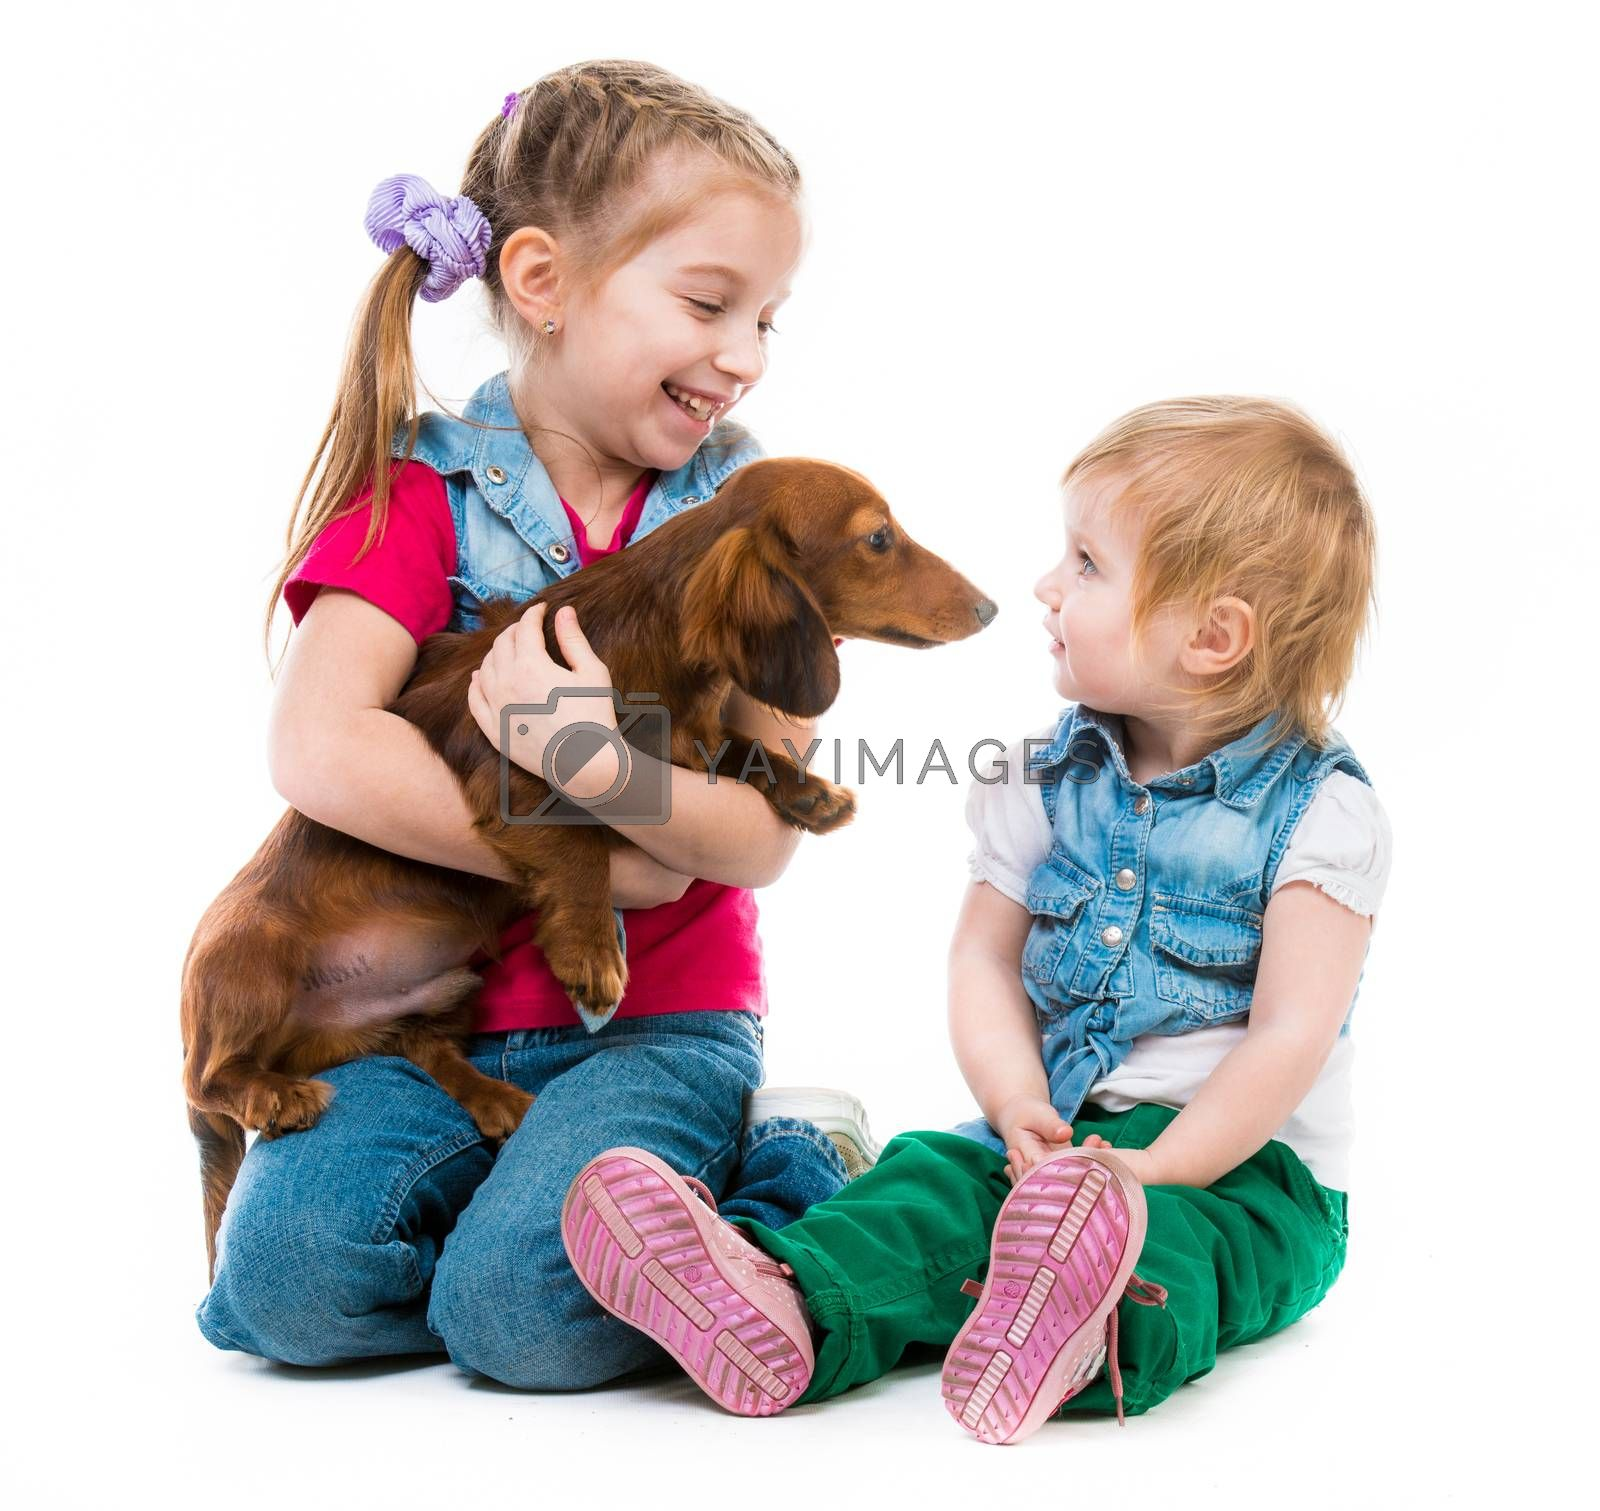 Royalty free image of kids with dachshund by GekaSkr